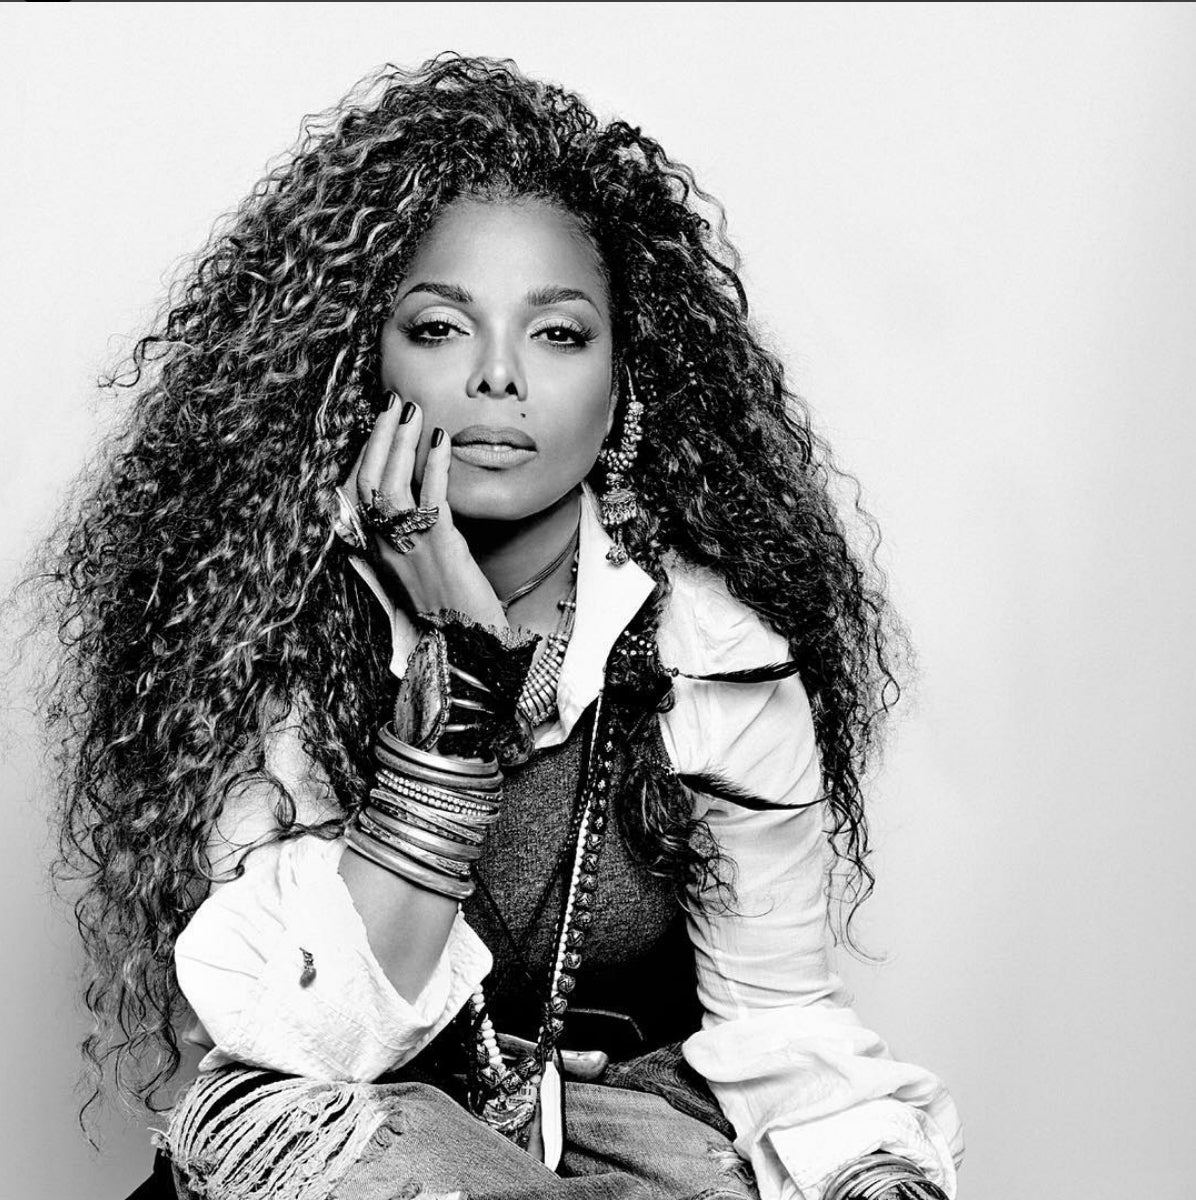 Janet Jackson Opens Up About Her Insecurities: 'I Didn't Like Anything About Me'